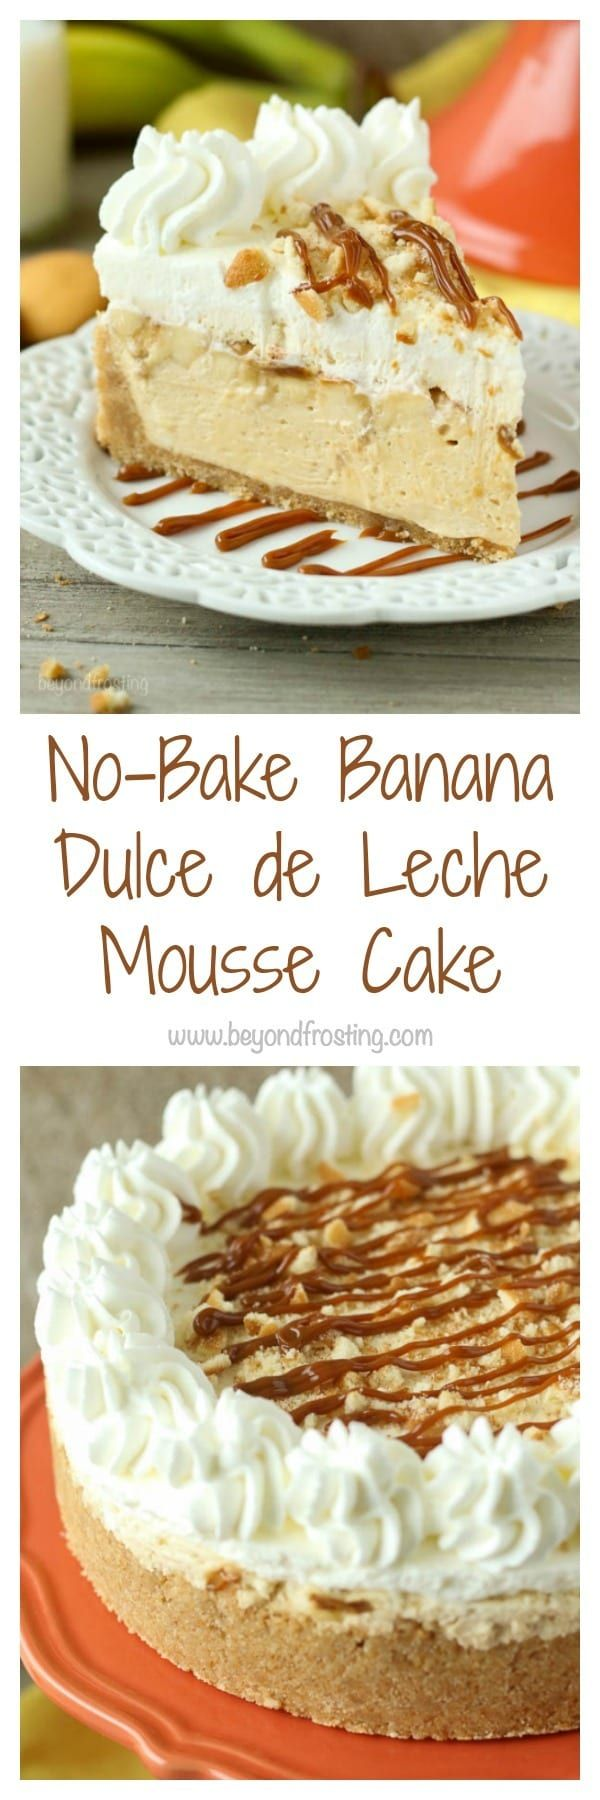 This No-Bake Banana Dulce De Leche Mousse Cake is layers of dulce de leche mousse and fresh sliced banana under a layer of banana pudding mousse with a Nilla wafer crust and whipped cream on top.